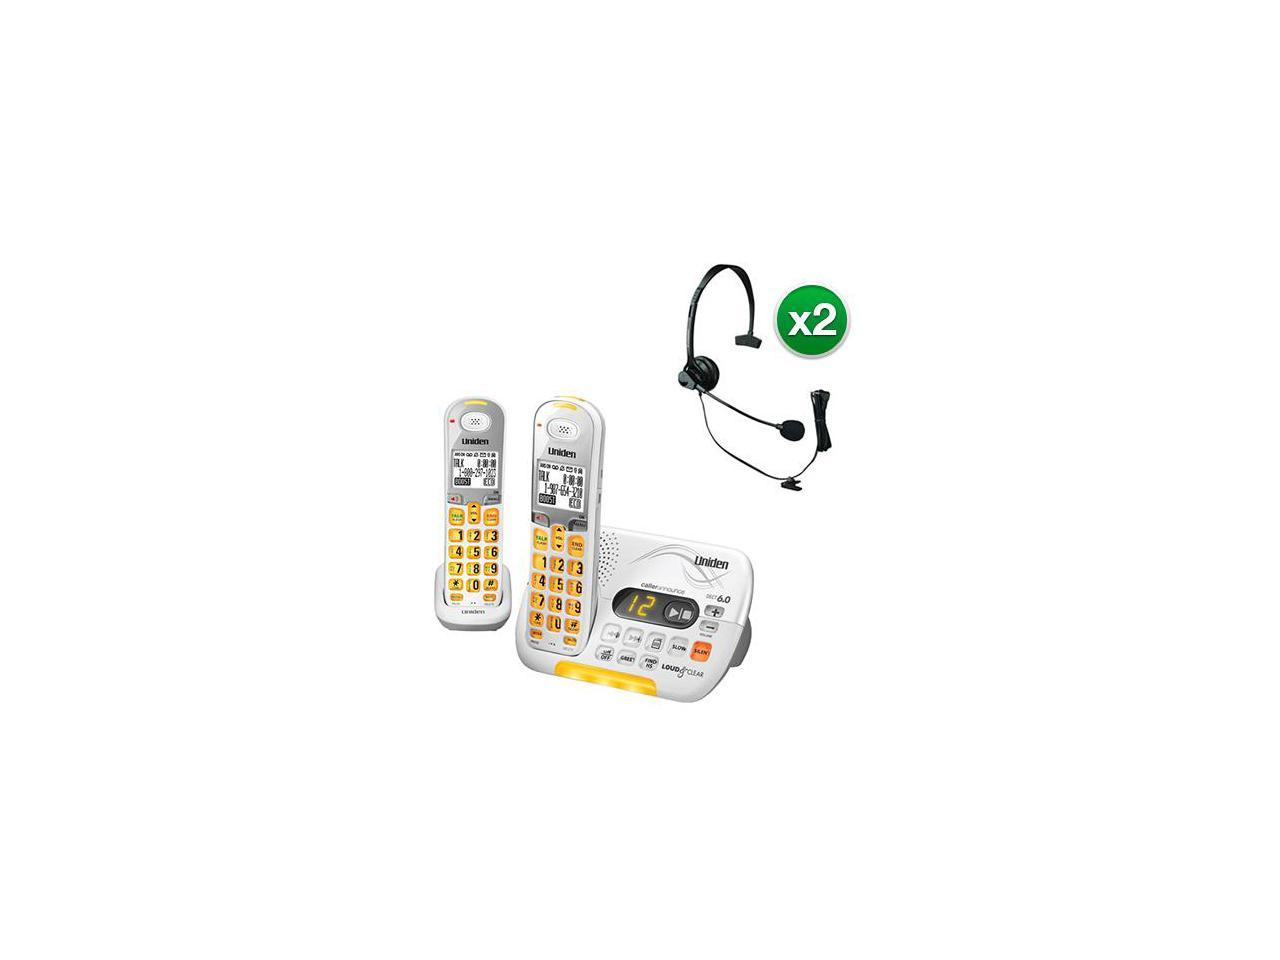 Uniden D3097-2 with Headset DECT 6.0 Amplified Cordless